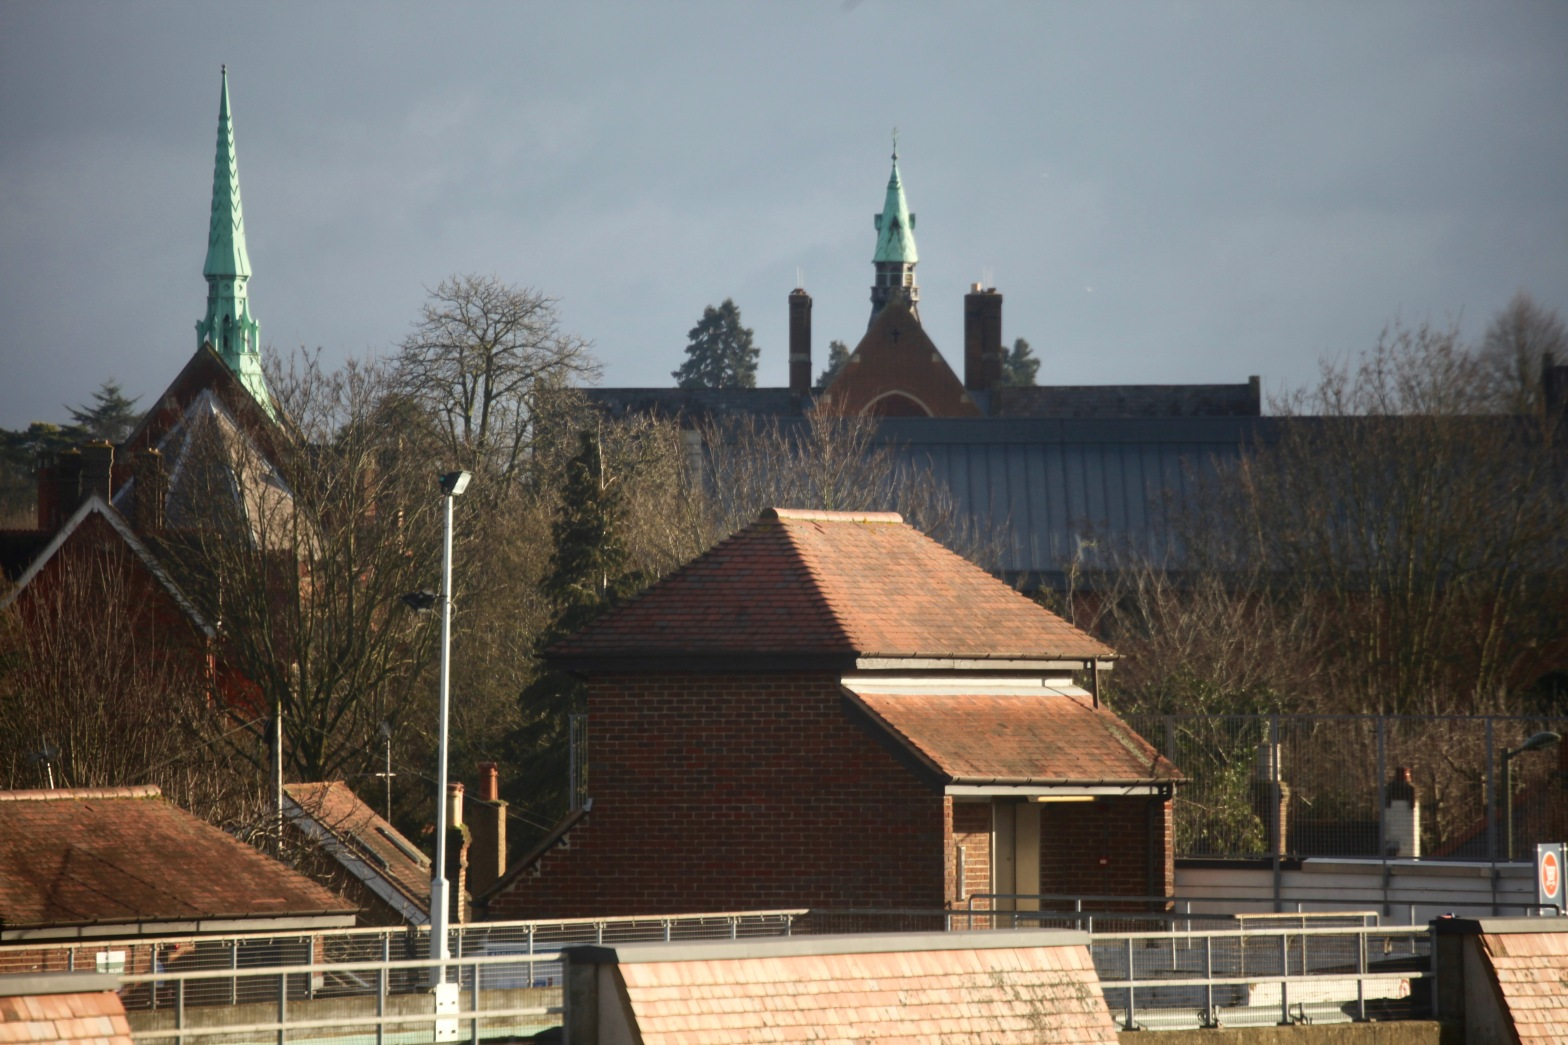 View from Travelodge window 4